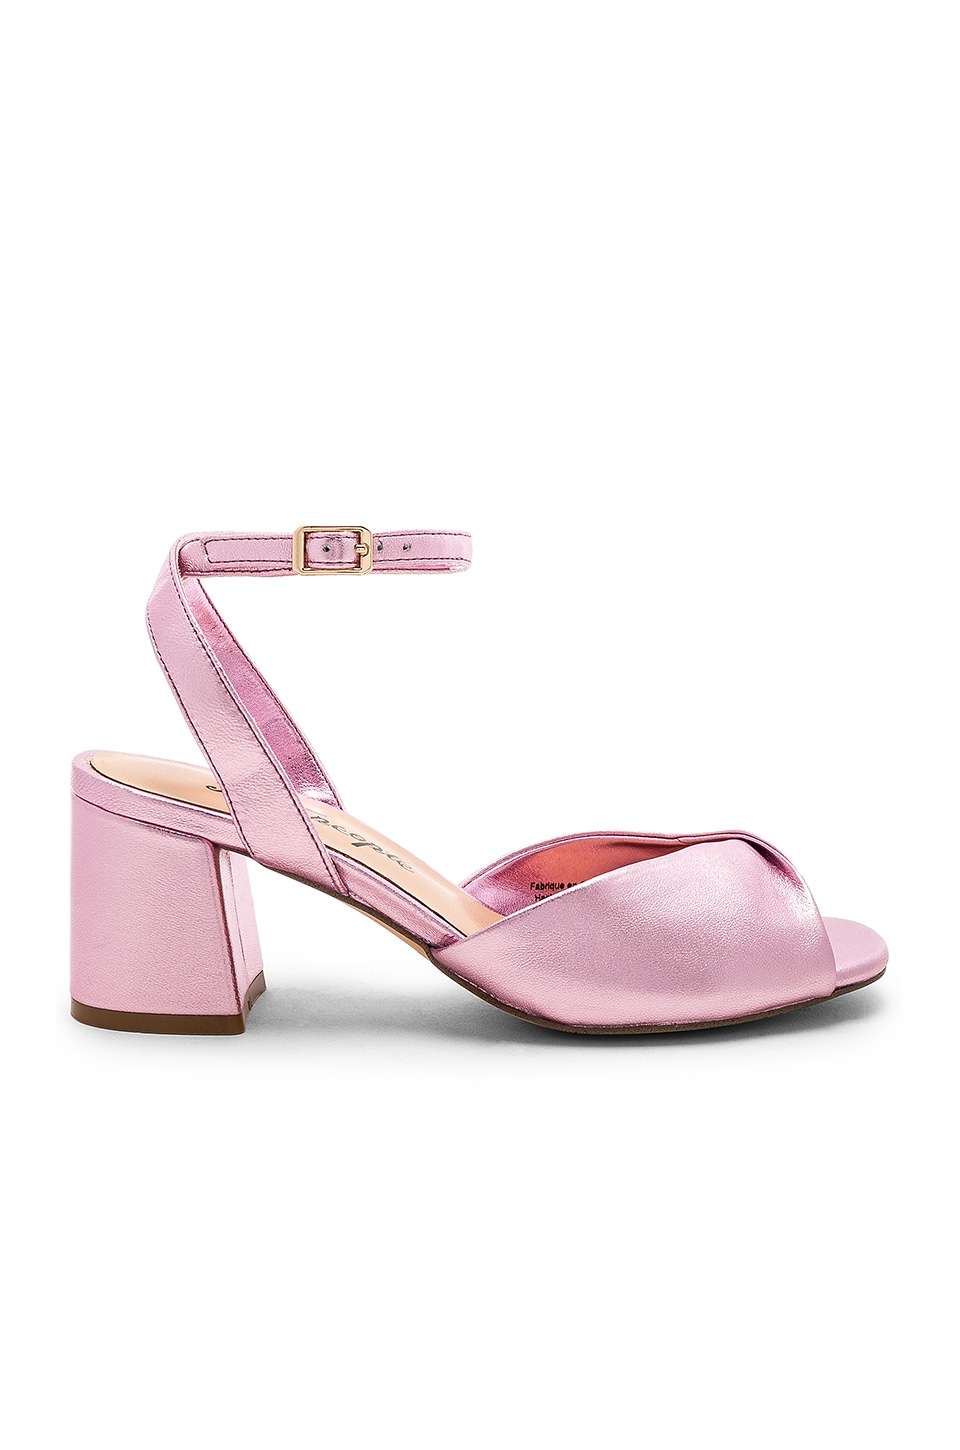 Free People Gisele Block Heel Sandal in Pink